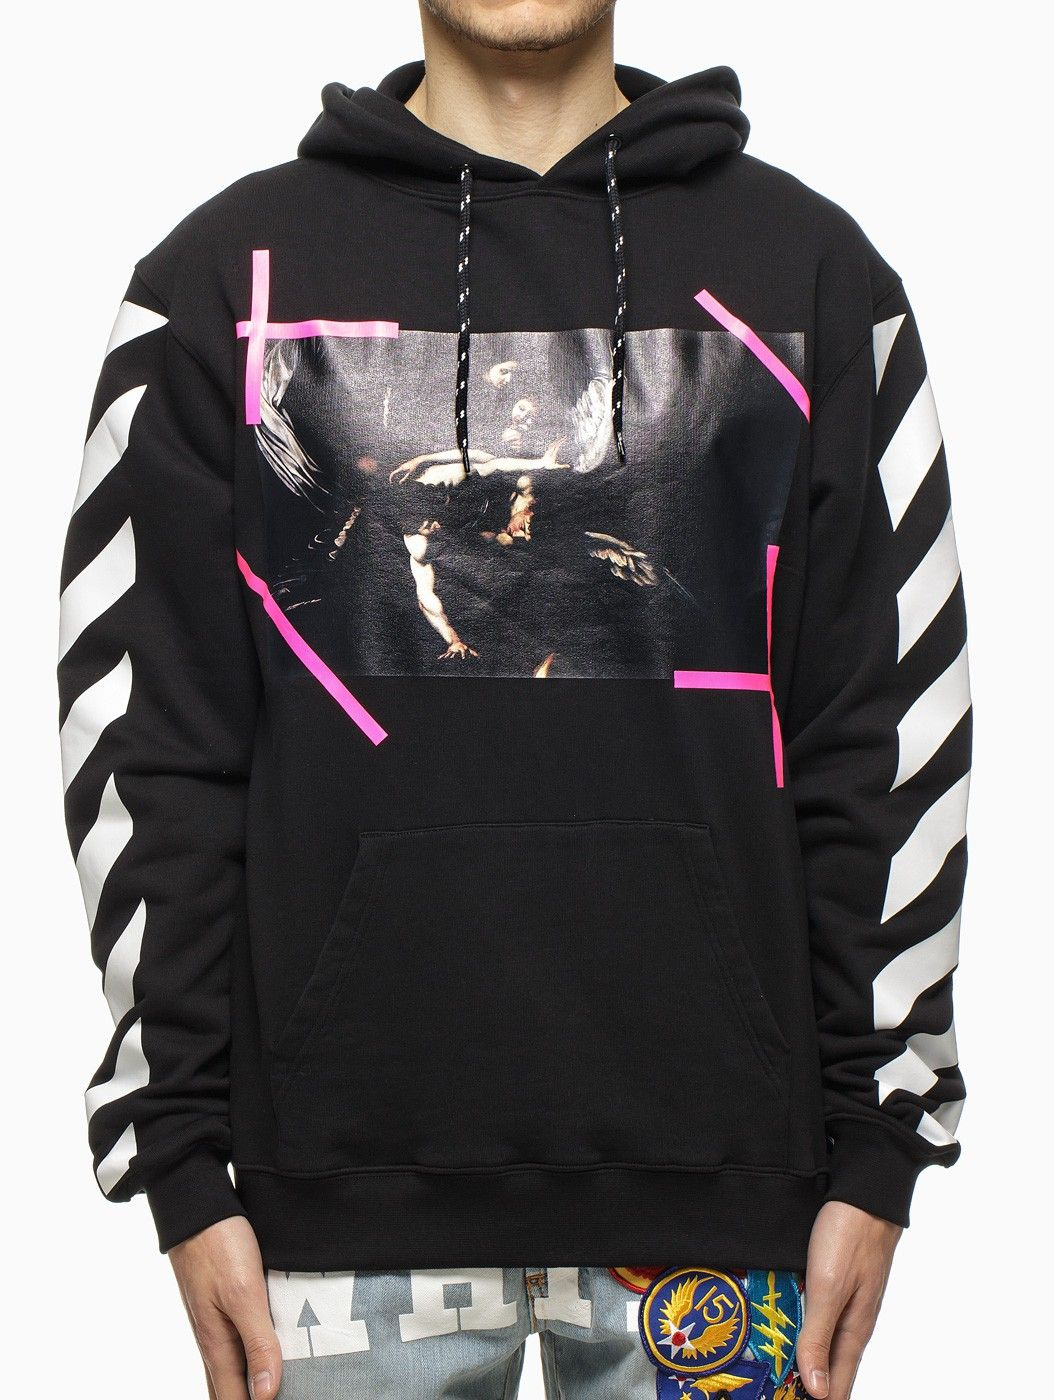 "cf3797a4efd ""Caravaggio"" hooded sweatshirt from the S S2015 Off-White c o Virgil Abloh  collection in black."